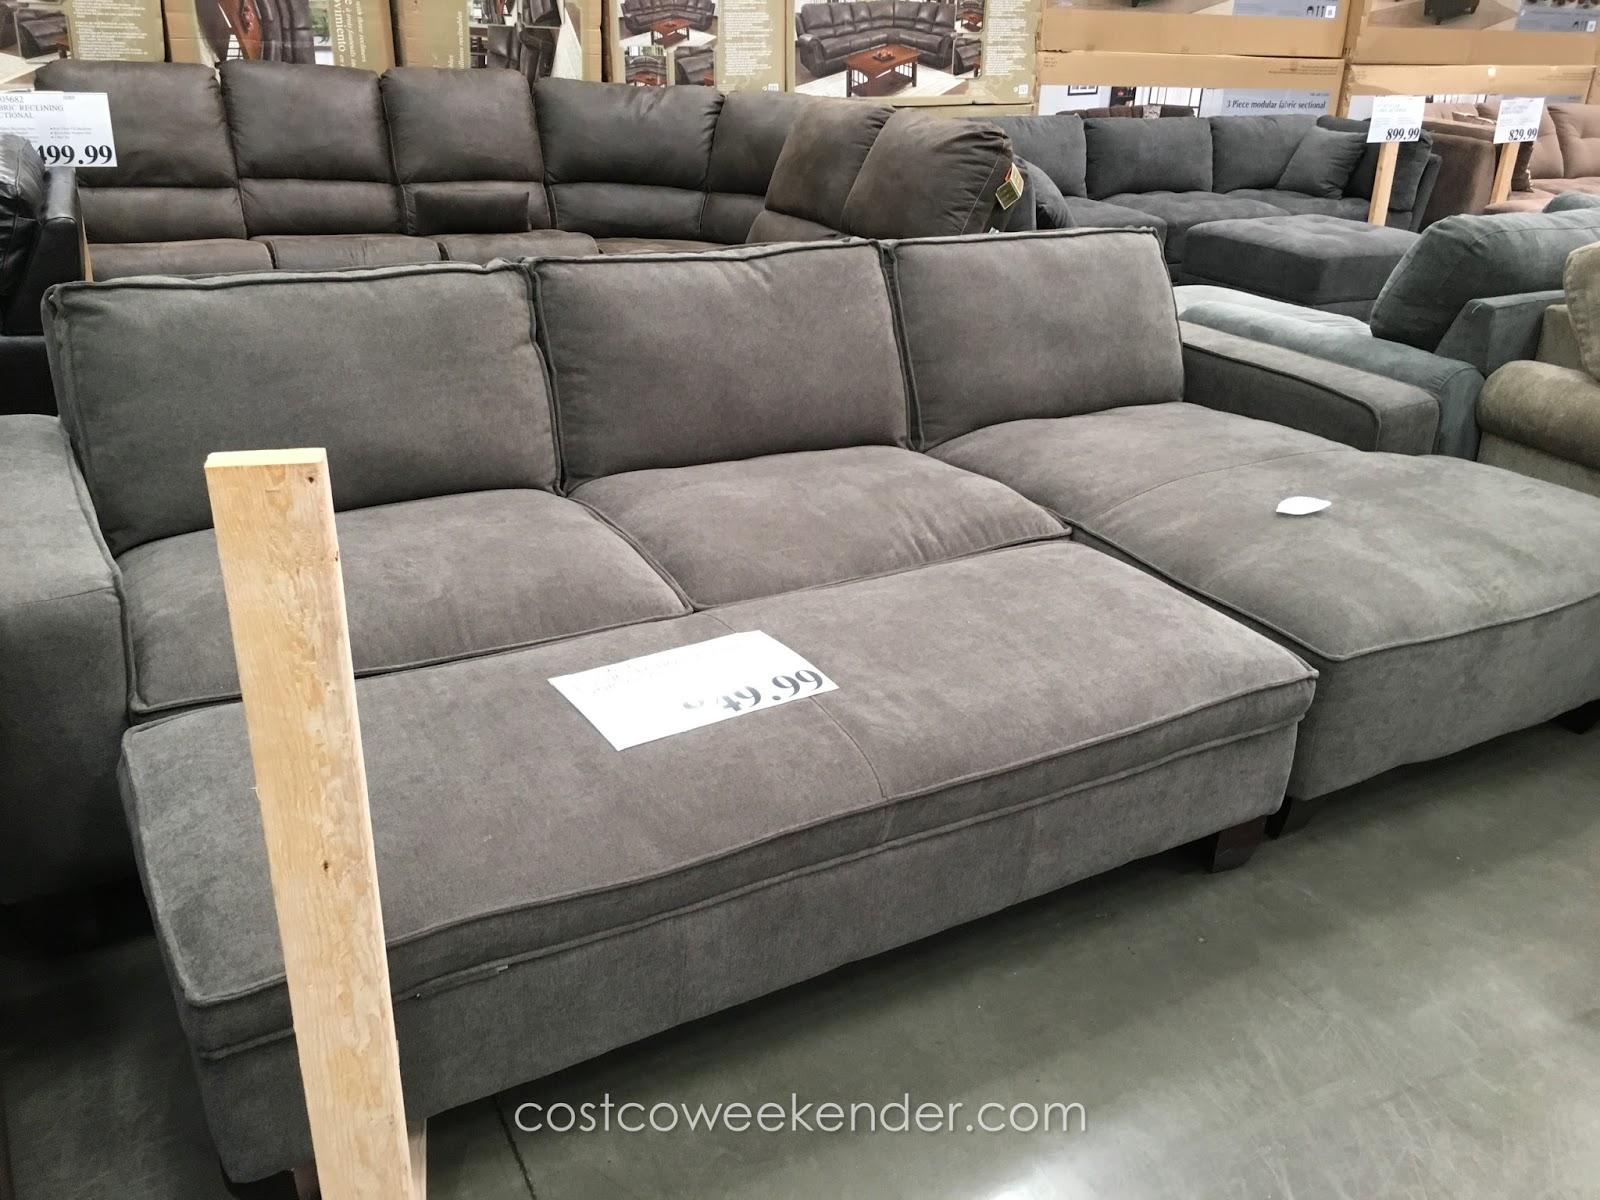 chaise sectional sofa with storage ottoman costco weekender. Black Bedroom Furniture Sets. Home Design Ideas